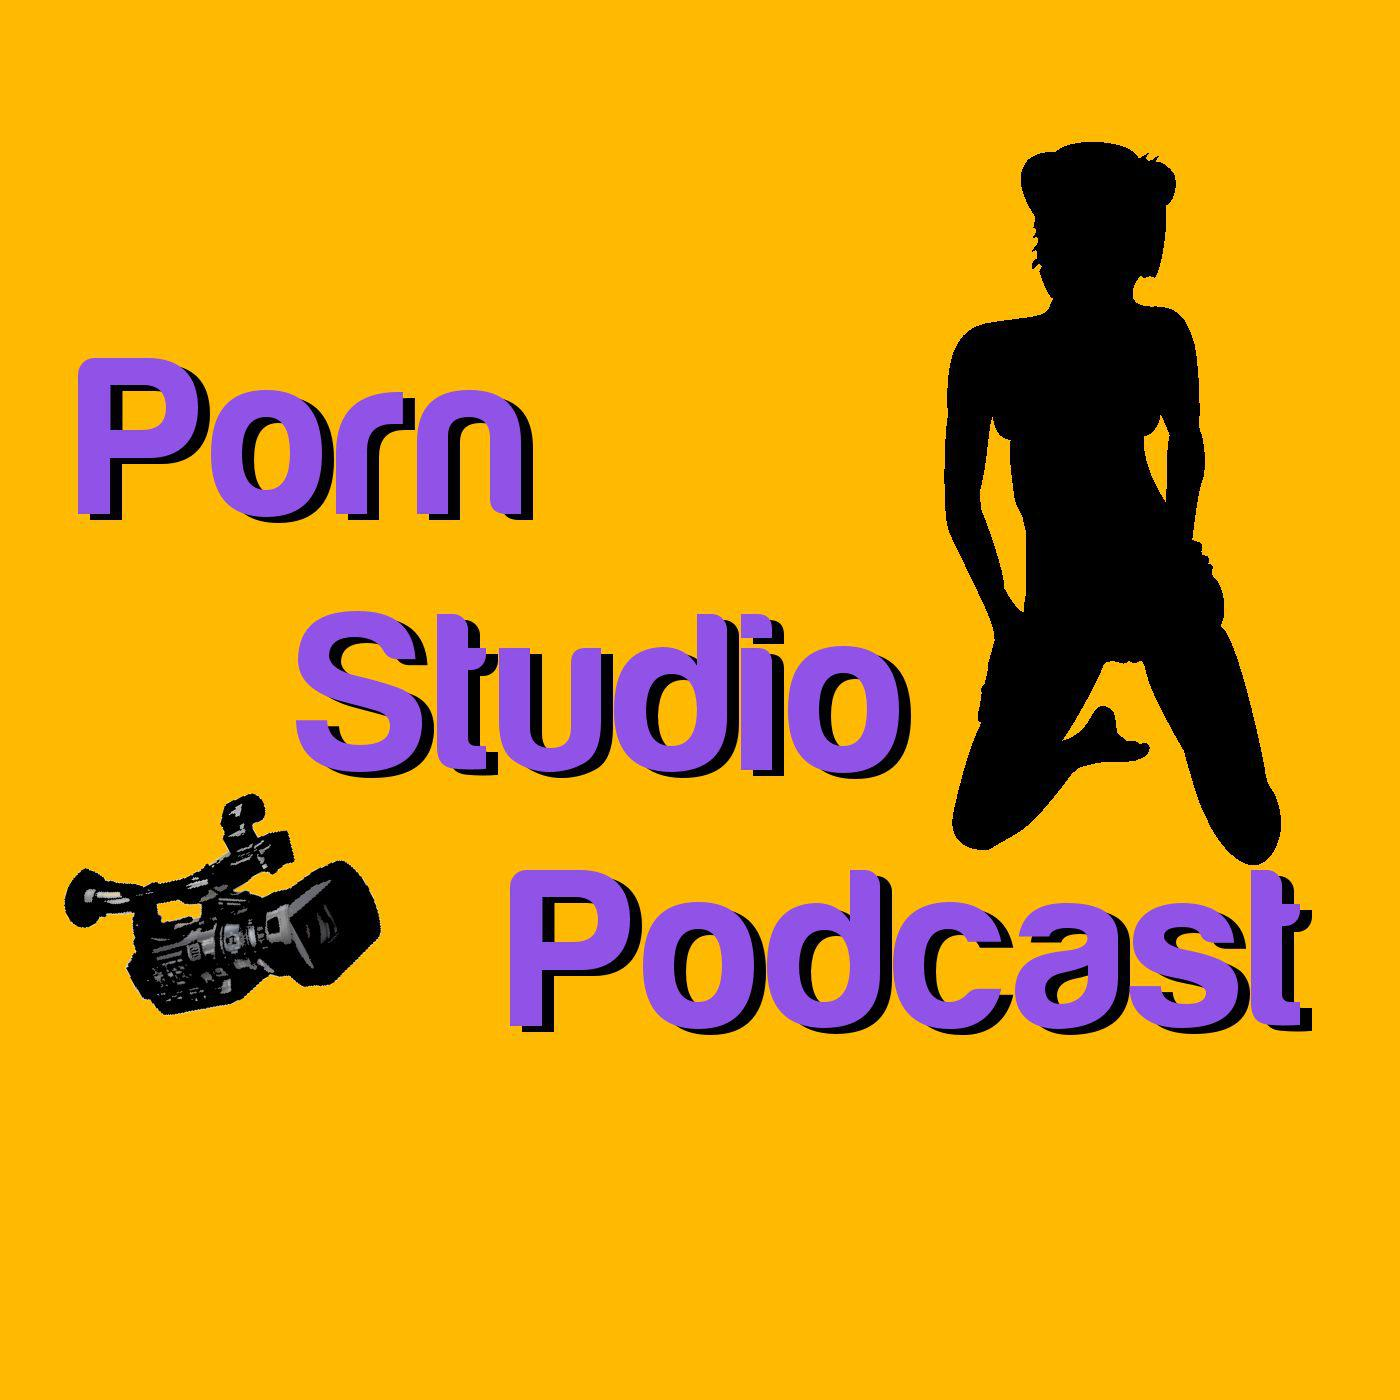 Podcast sex stories, naked couple animation